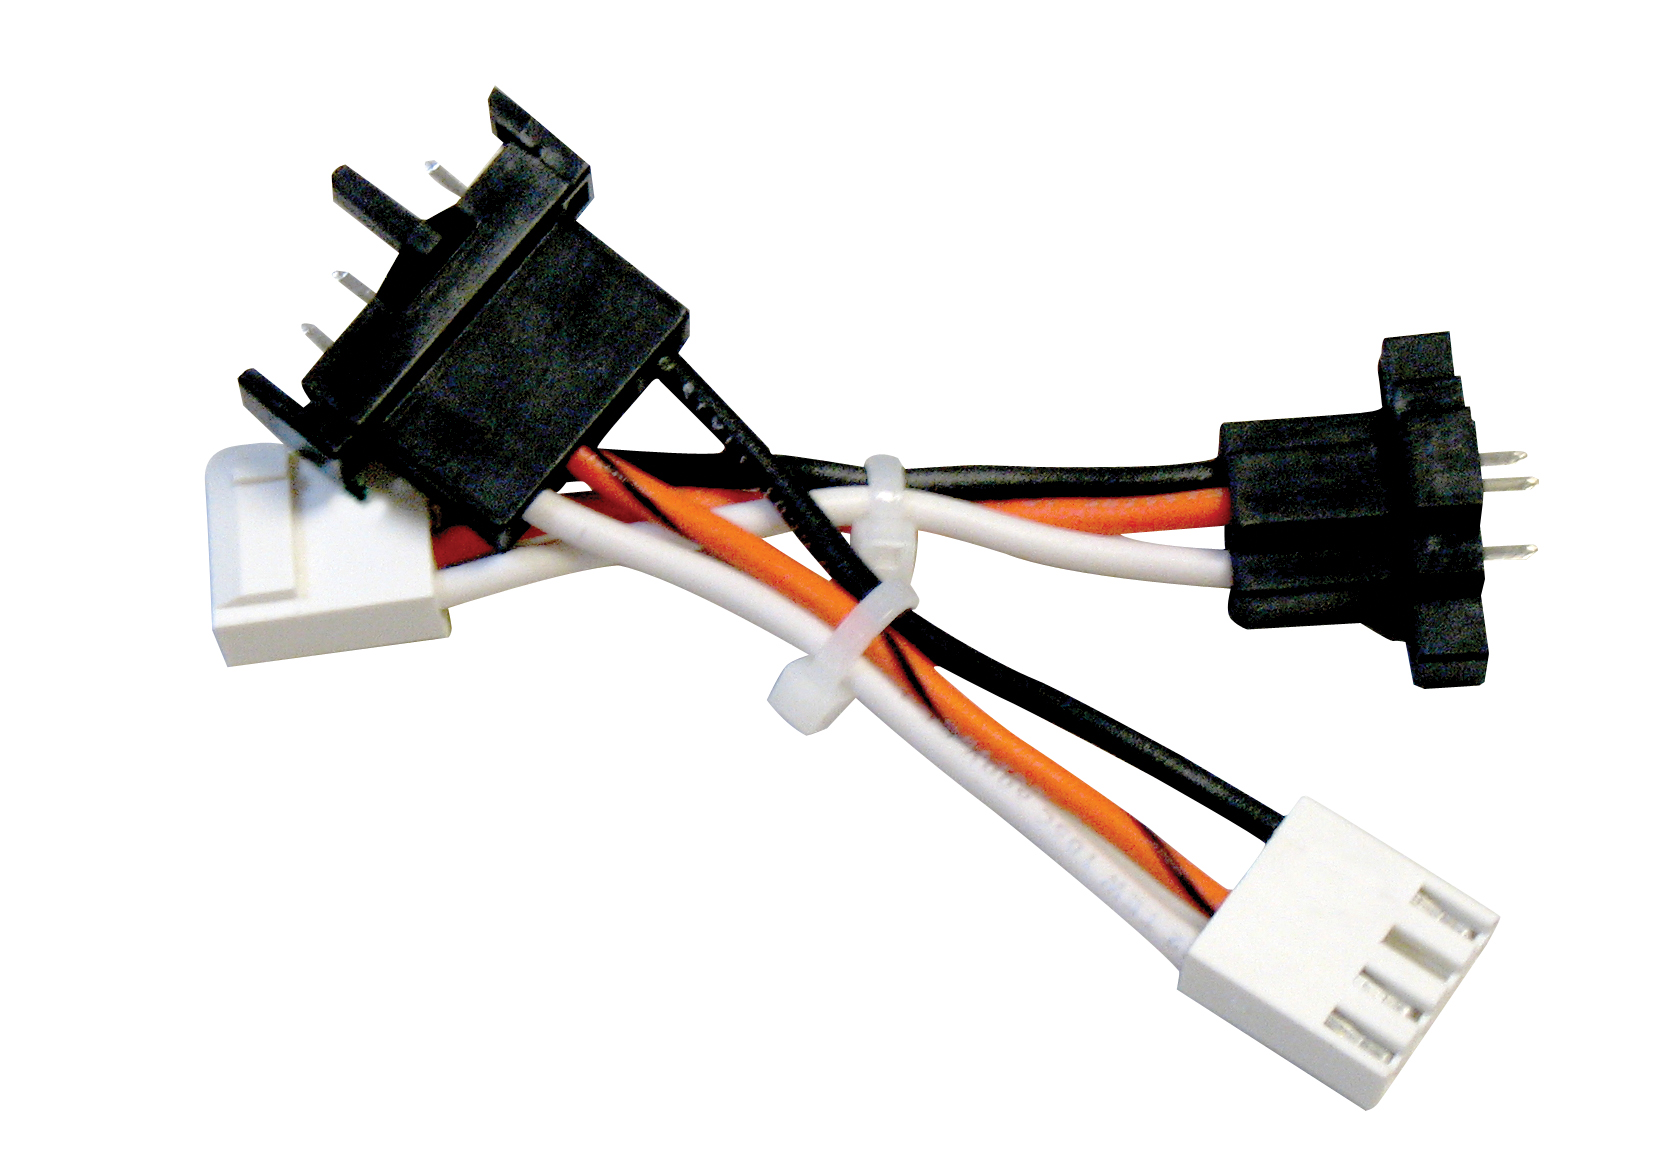 adk 12 adf 12 adapter plug firex firex i4618 wiring harness at n-0.co